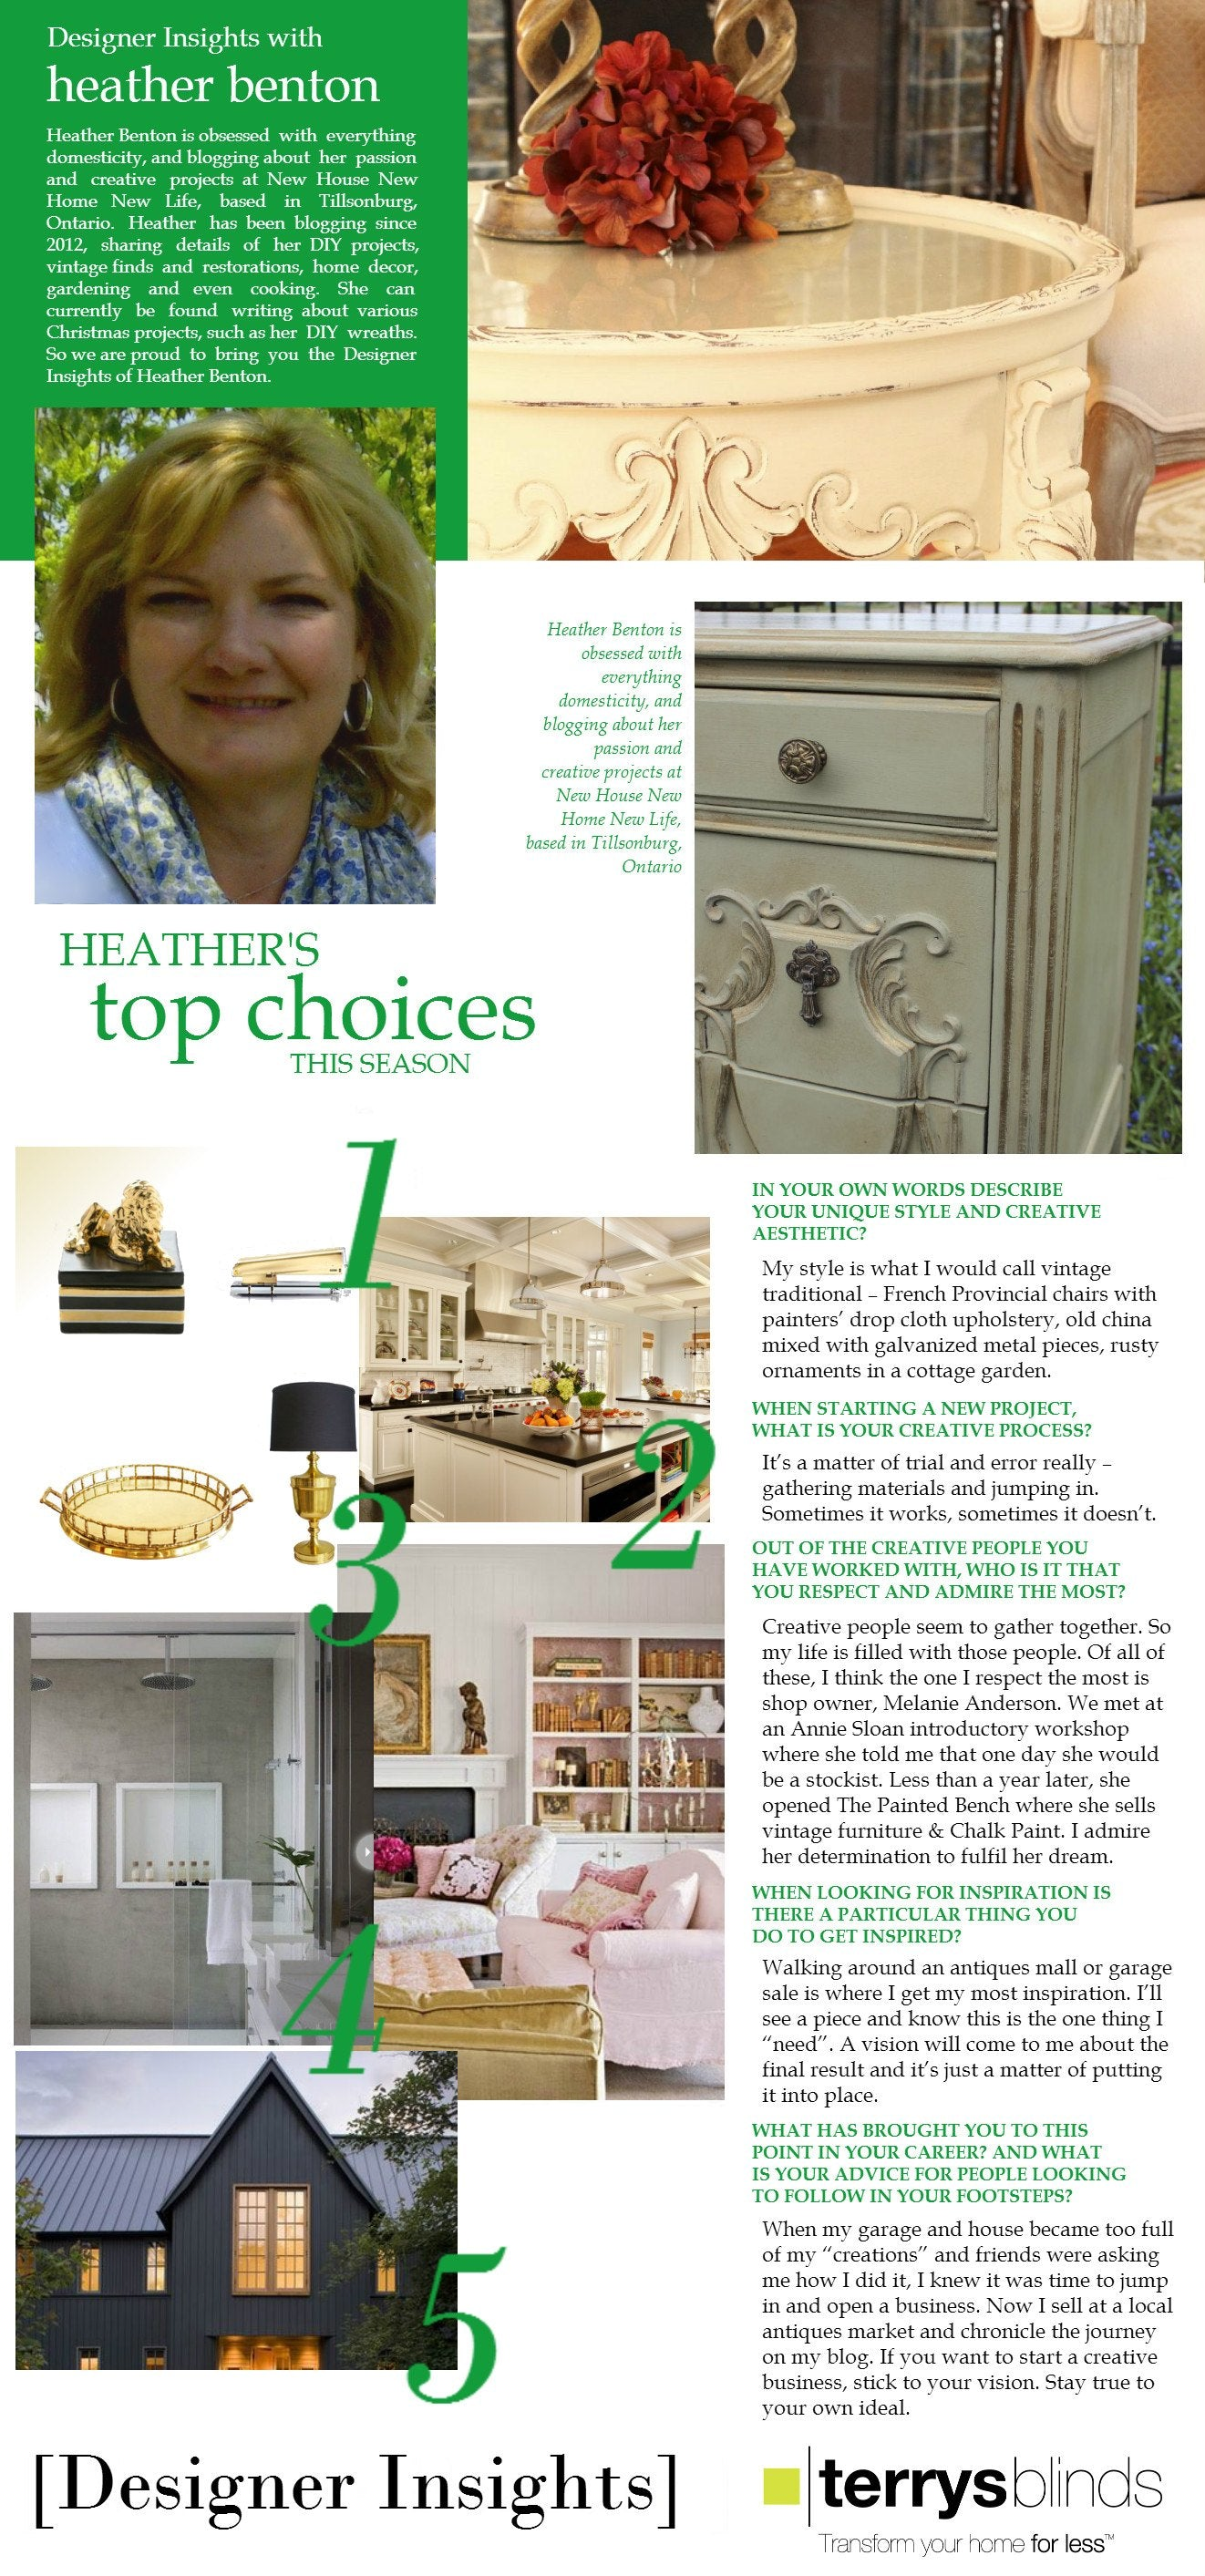 Designer Insights - Heather Benton